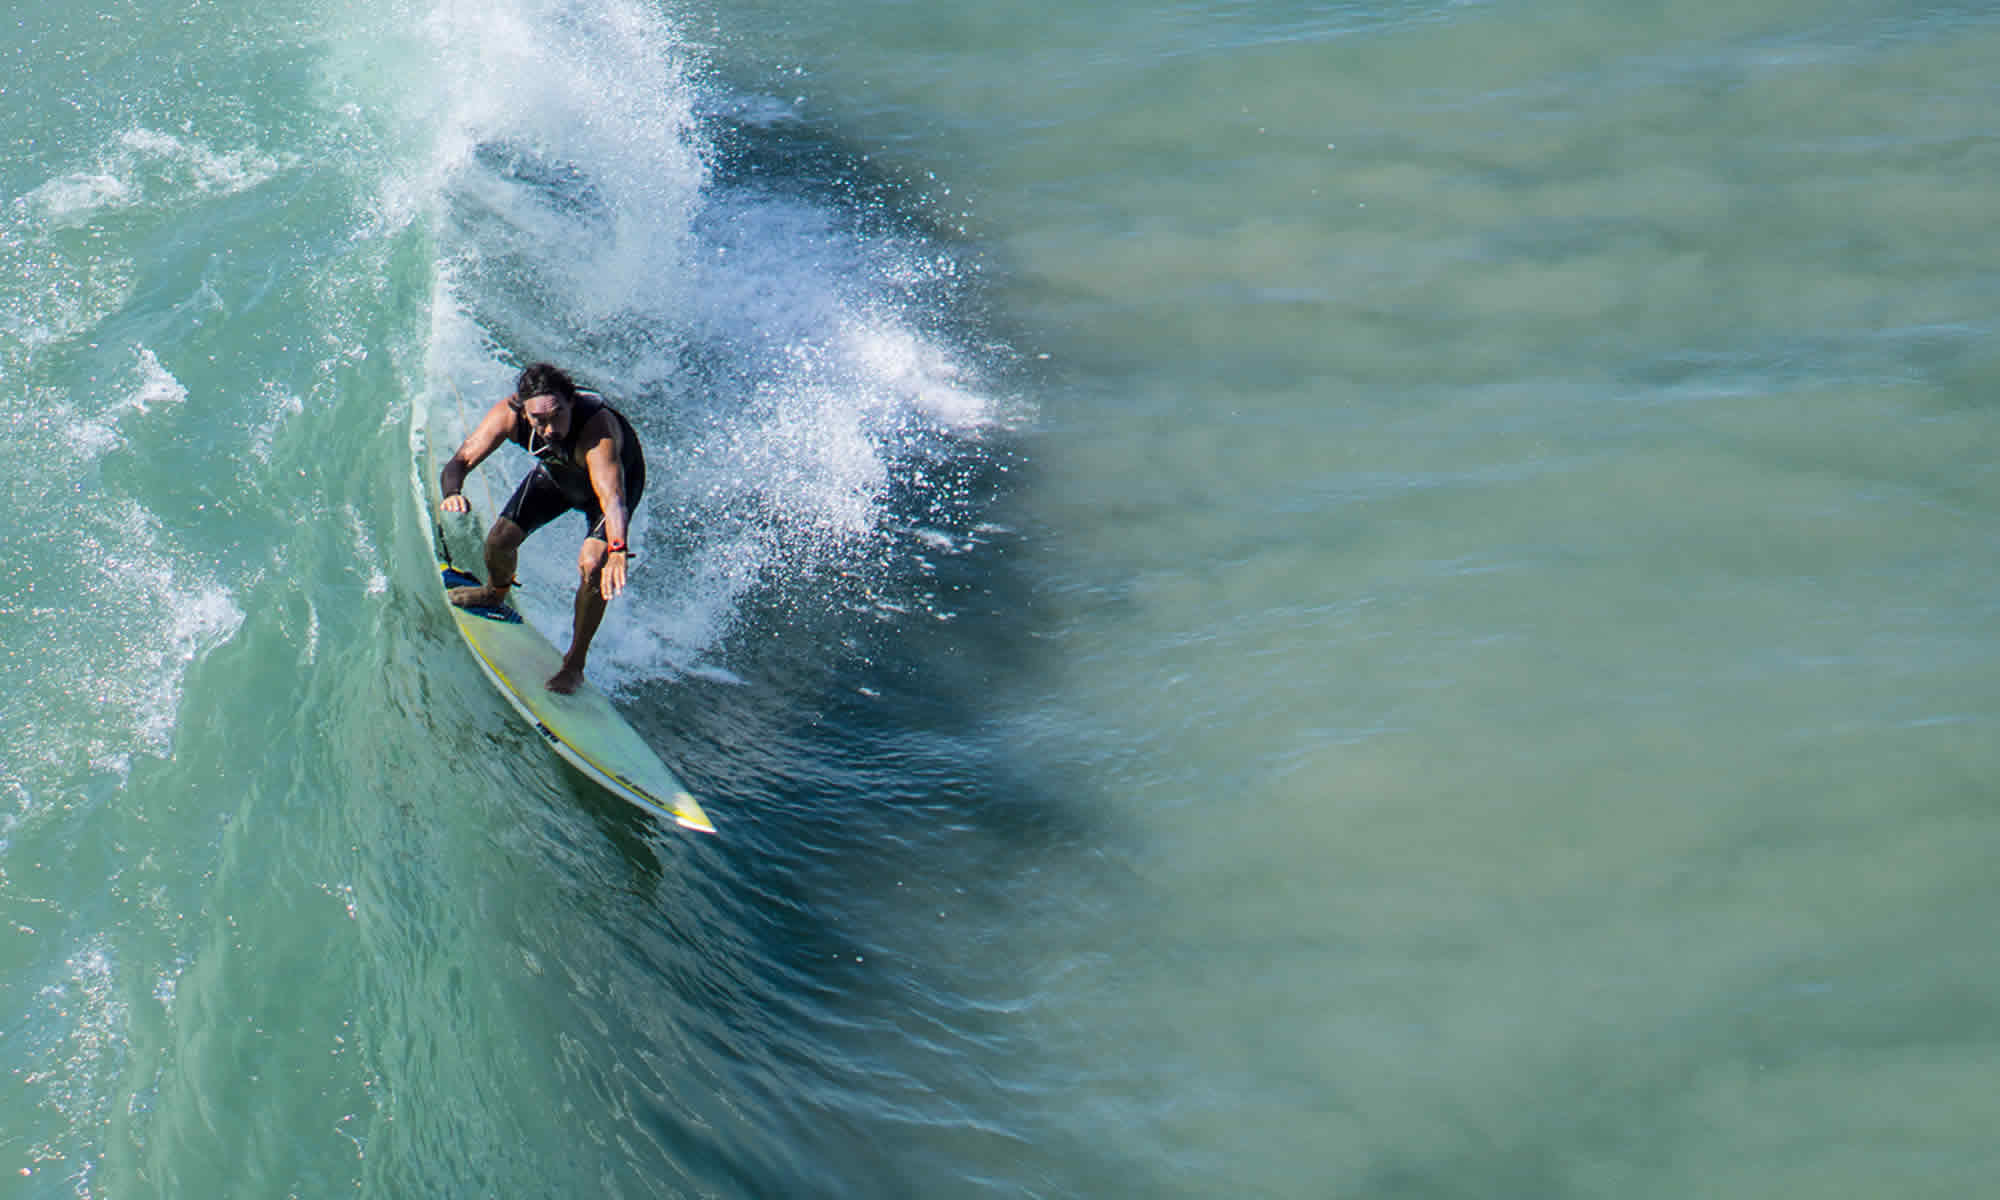 Ocean Minded Surfing Safety